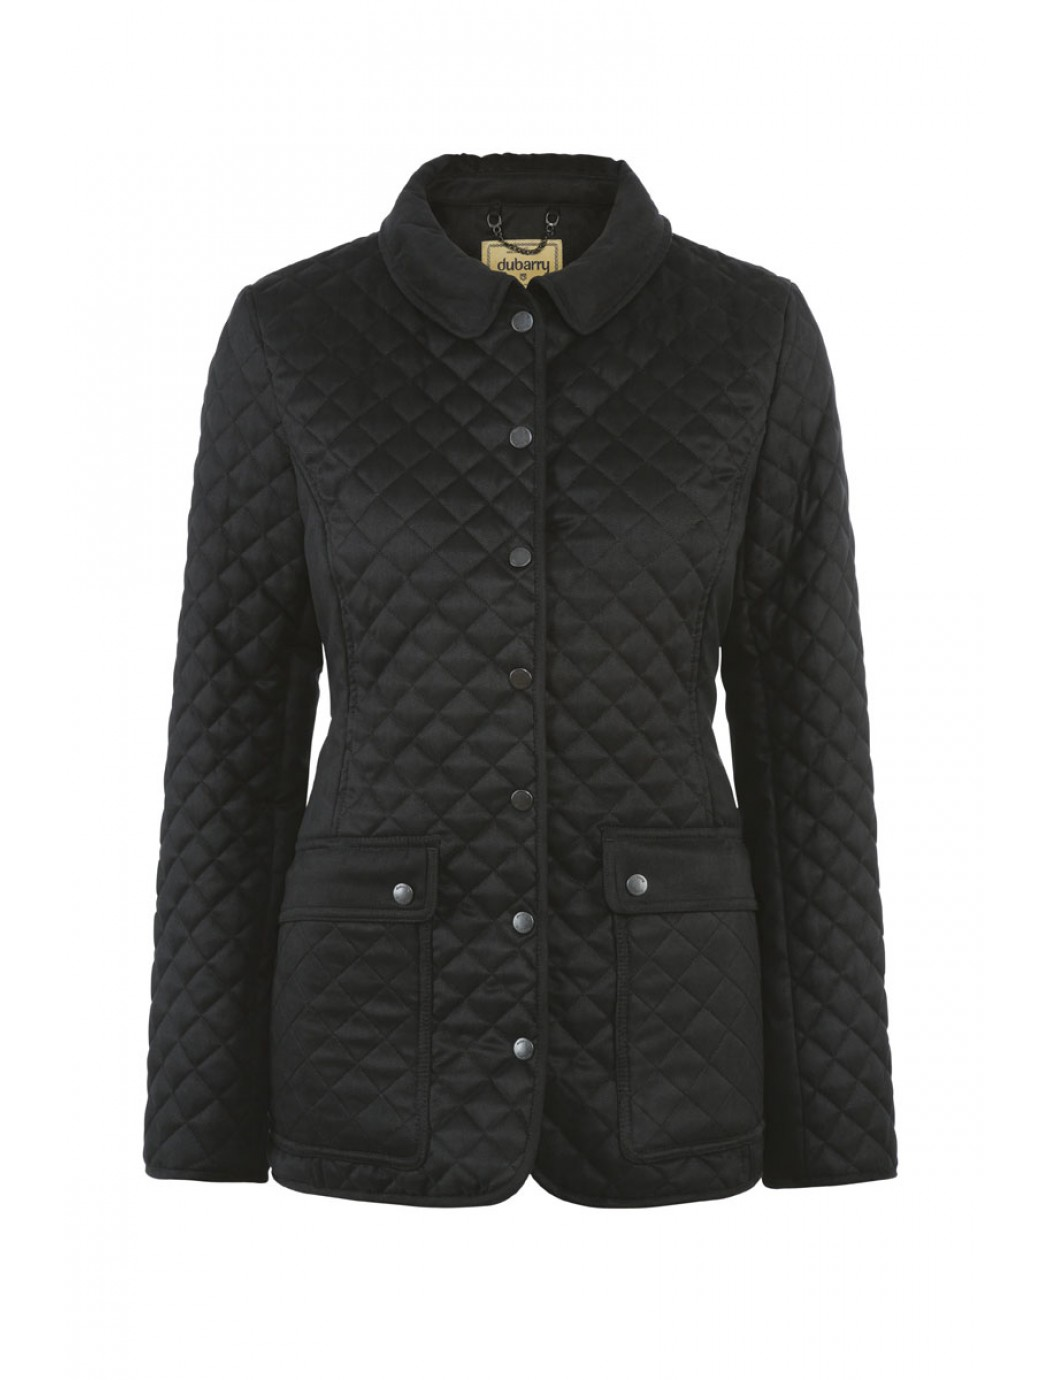 shaw-quilted-jacket-navy-dubarry-1 1